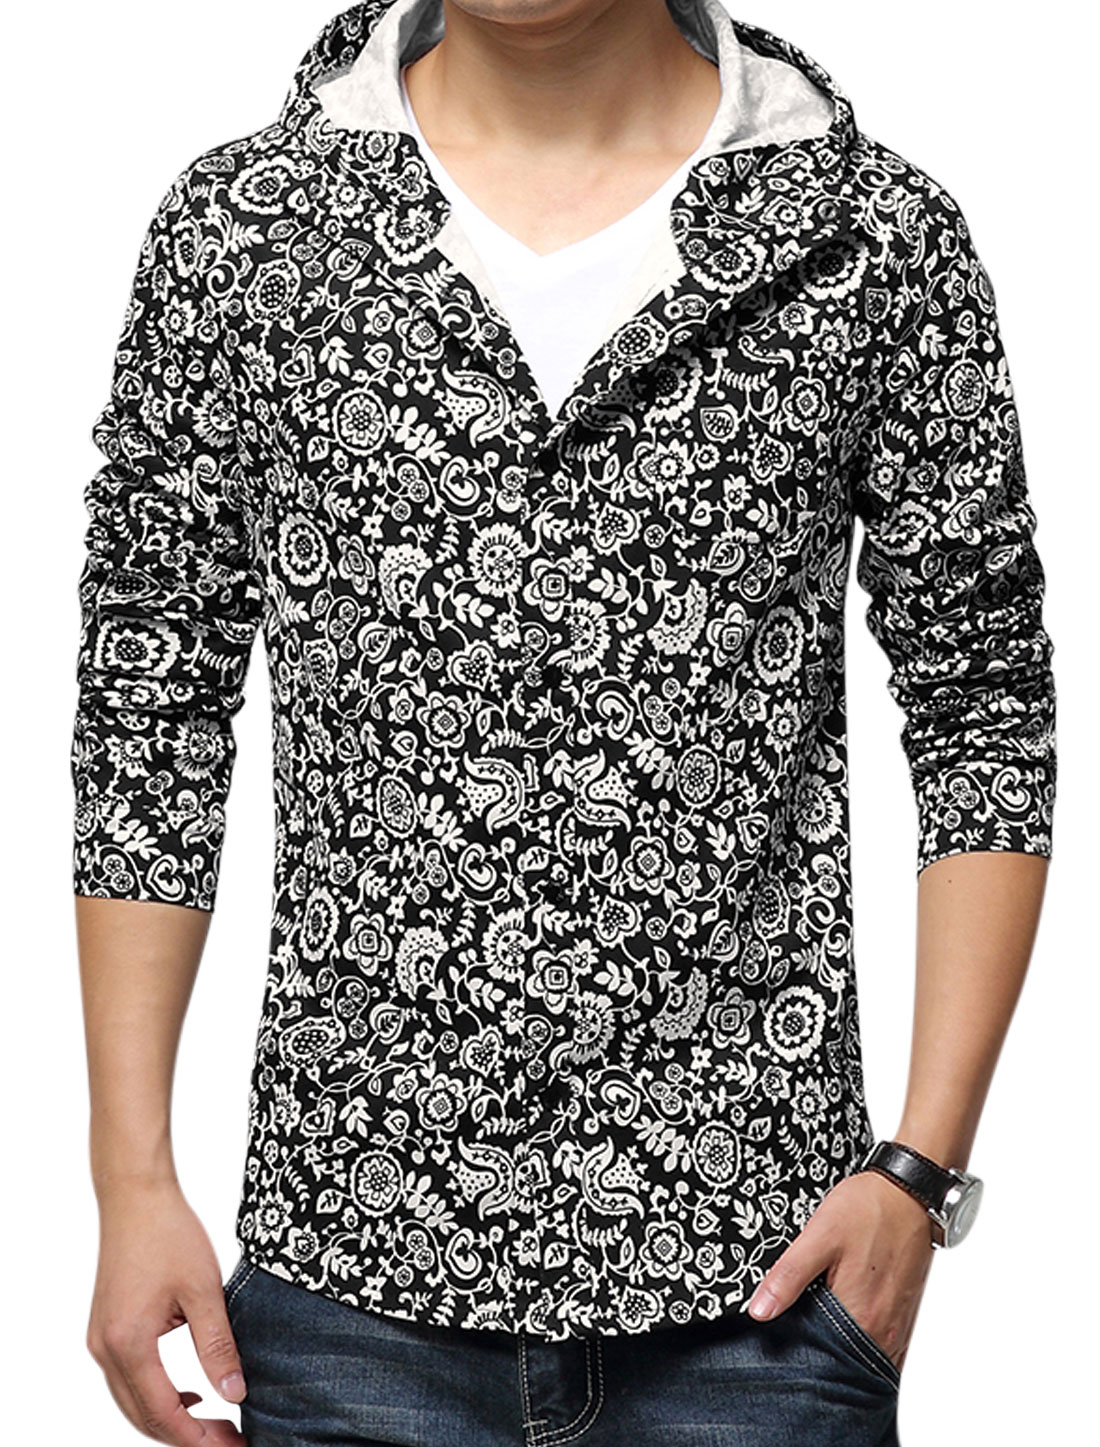 Men Hooded Long Sleeves Flower Prints New Style Jacket Black Beige S